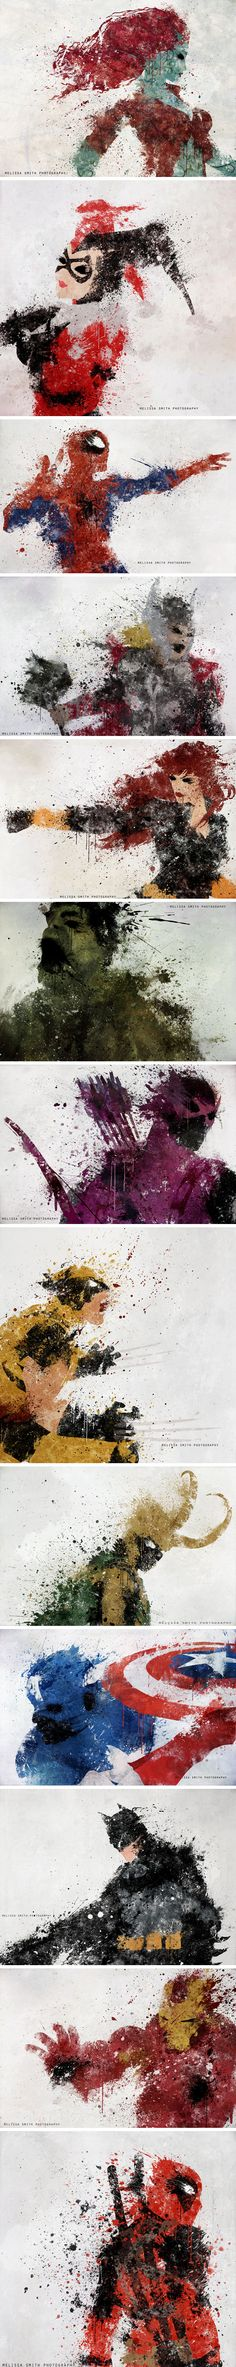 Melissa Smith's Superhero Splatter Art